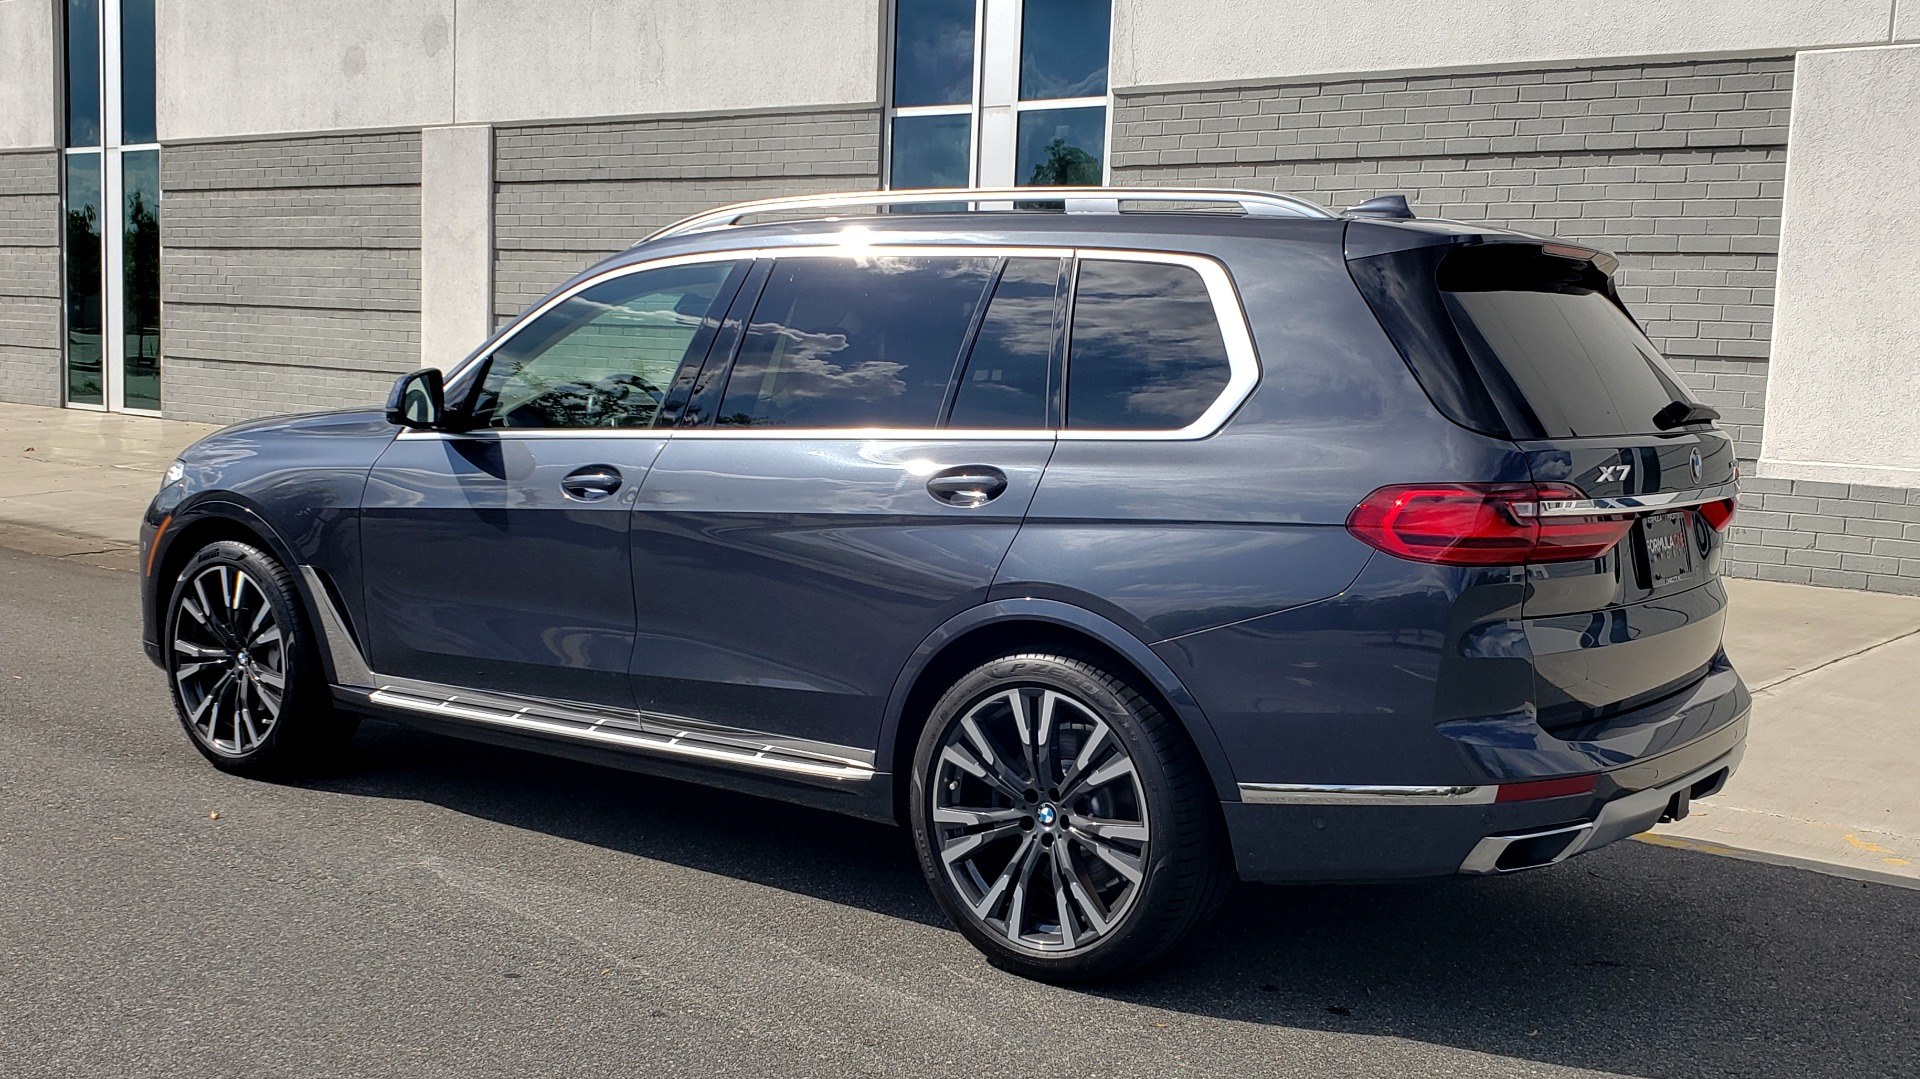 Used 2019 BMW X7 XDRIVE40I PREMIUM / LUXURY / COLD WEATHER / PARK ASST / PANORAMIC SKY / TOW for sale $75,999 at Formula Imports in Charlotte NC 28227 5